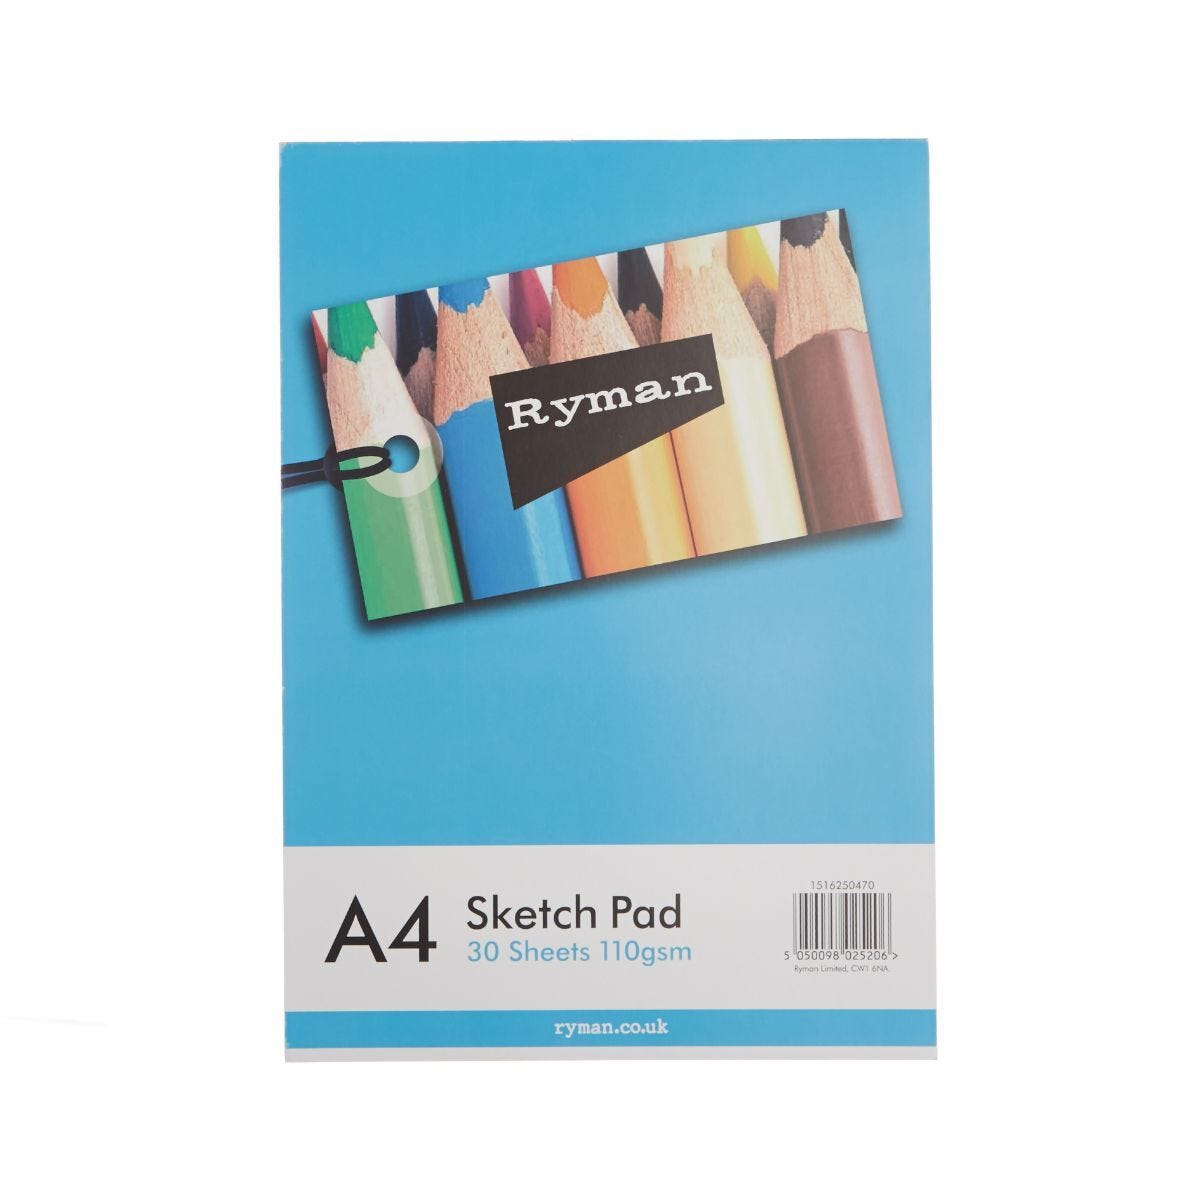 Ryman Sketch Pad A4 100gsm 60 Pages 30 Sheets